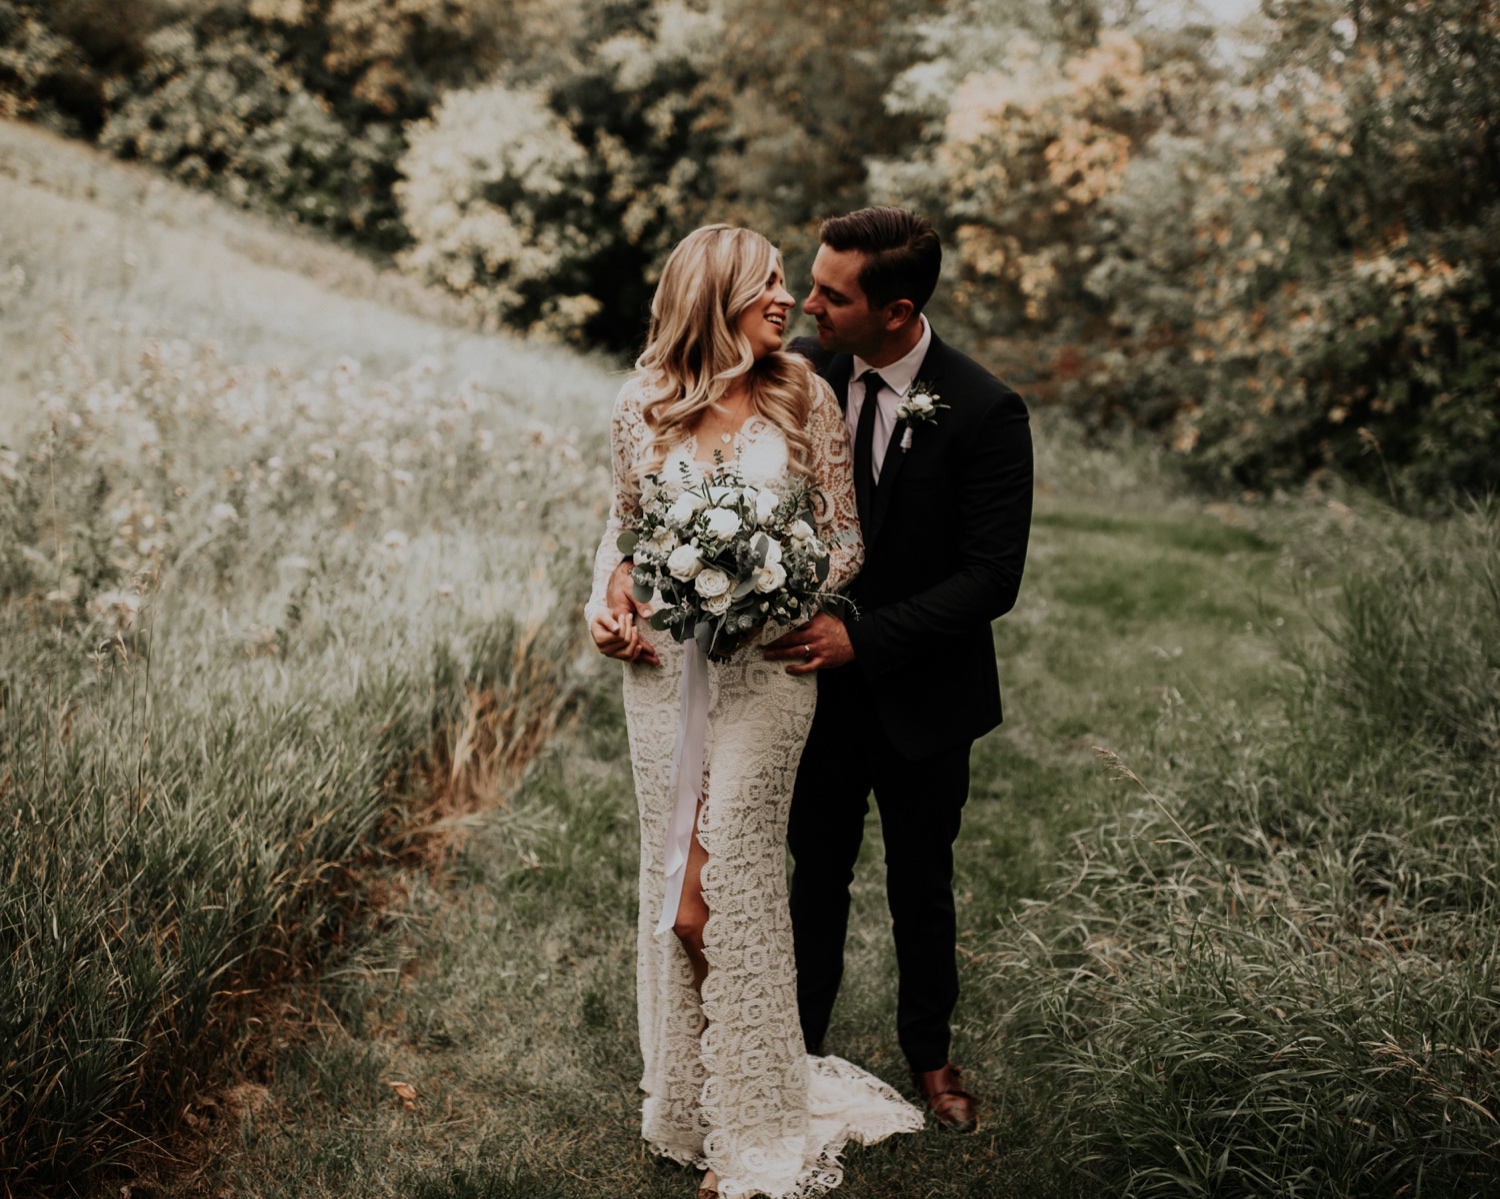 Wedding and Elopement Photography_Karly Ford Photo 04.jpg